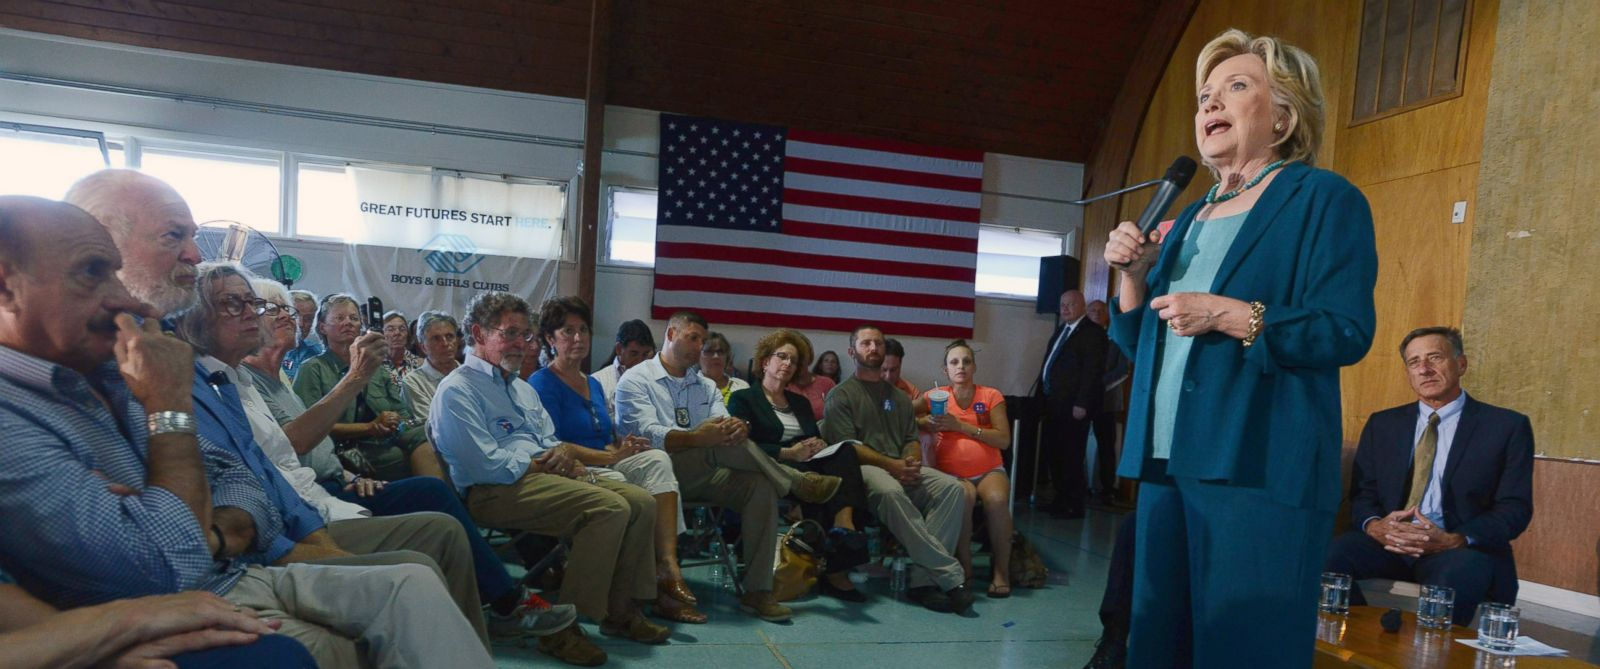 PHOTO: Democratic Presidential candidate Hillary Clinton speaks during a community forum on substance abuse Sep. 17, 2015 in Laconia, N.H.